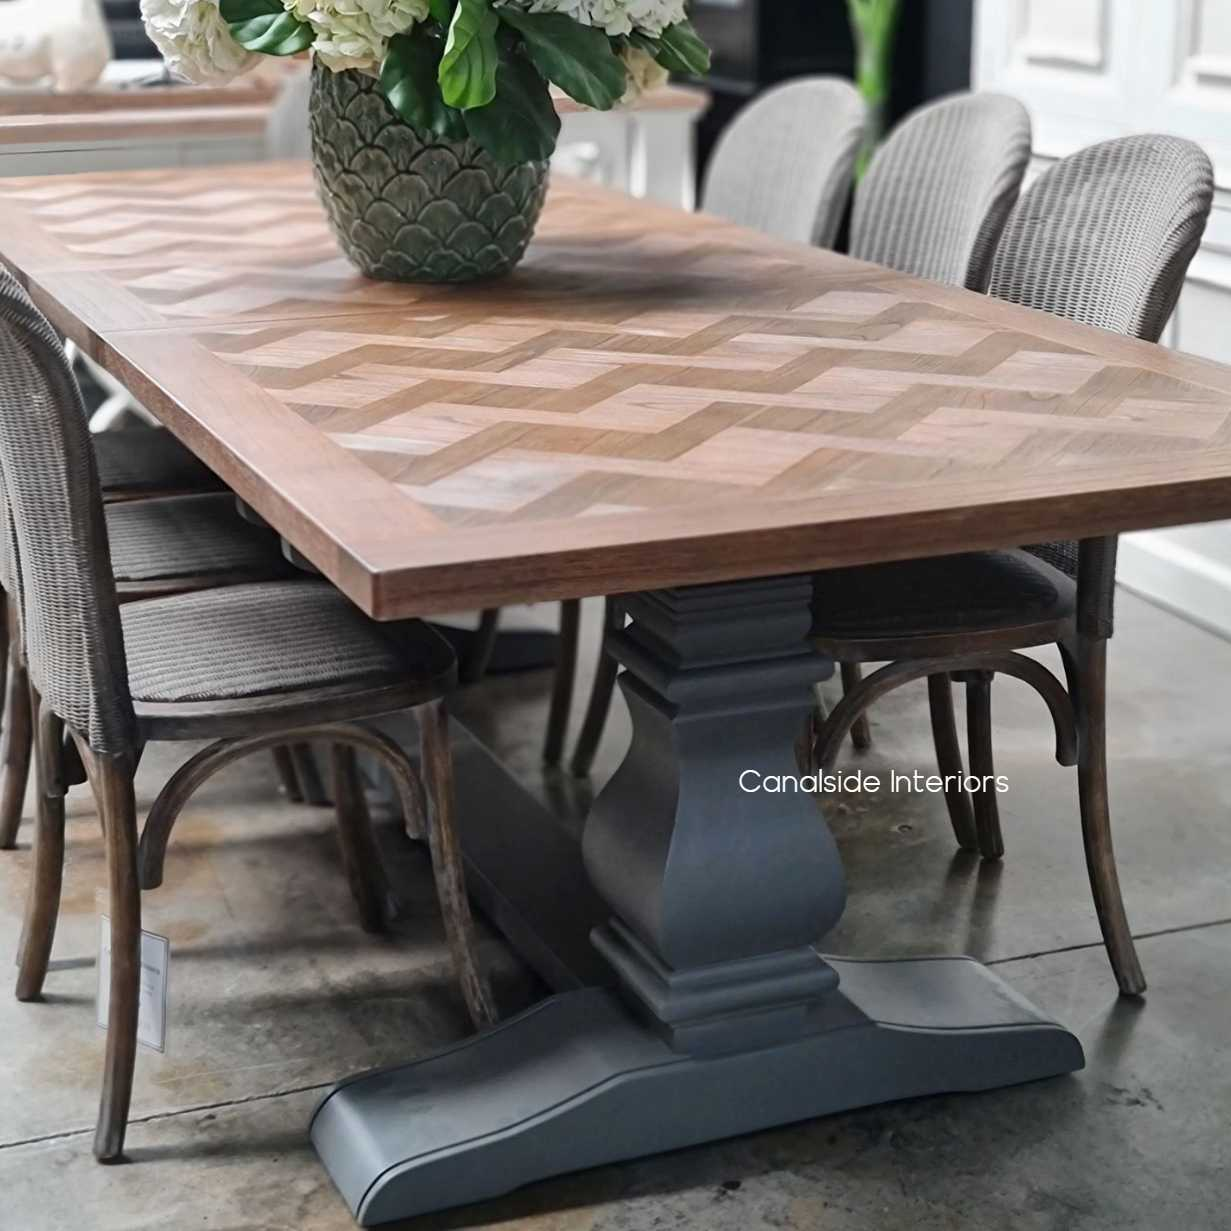 Chantilly Parquetry Double Extension Dining Table Grey Base tables, extension tables, hamptons, hamptons table, provincial, plantation, dining tables, trestle base, dining room